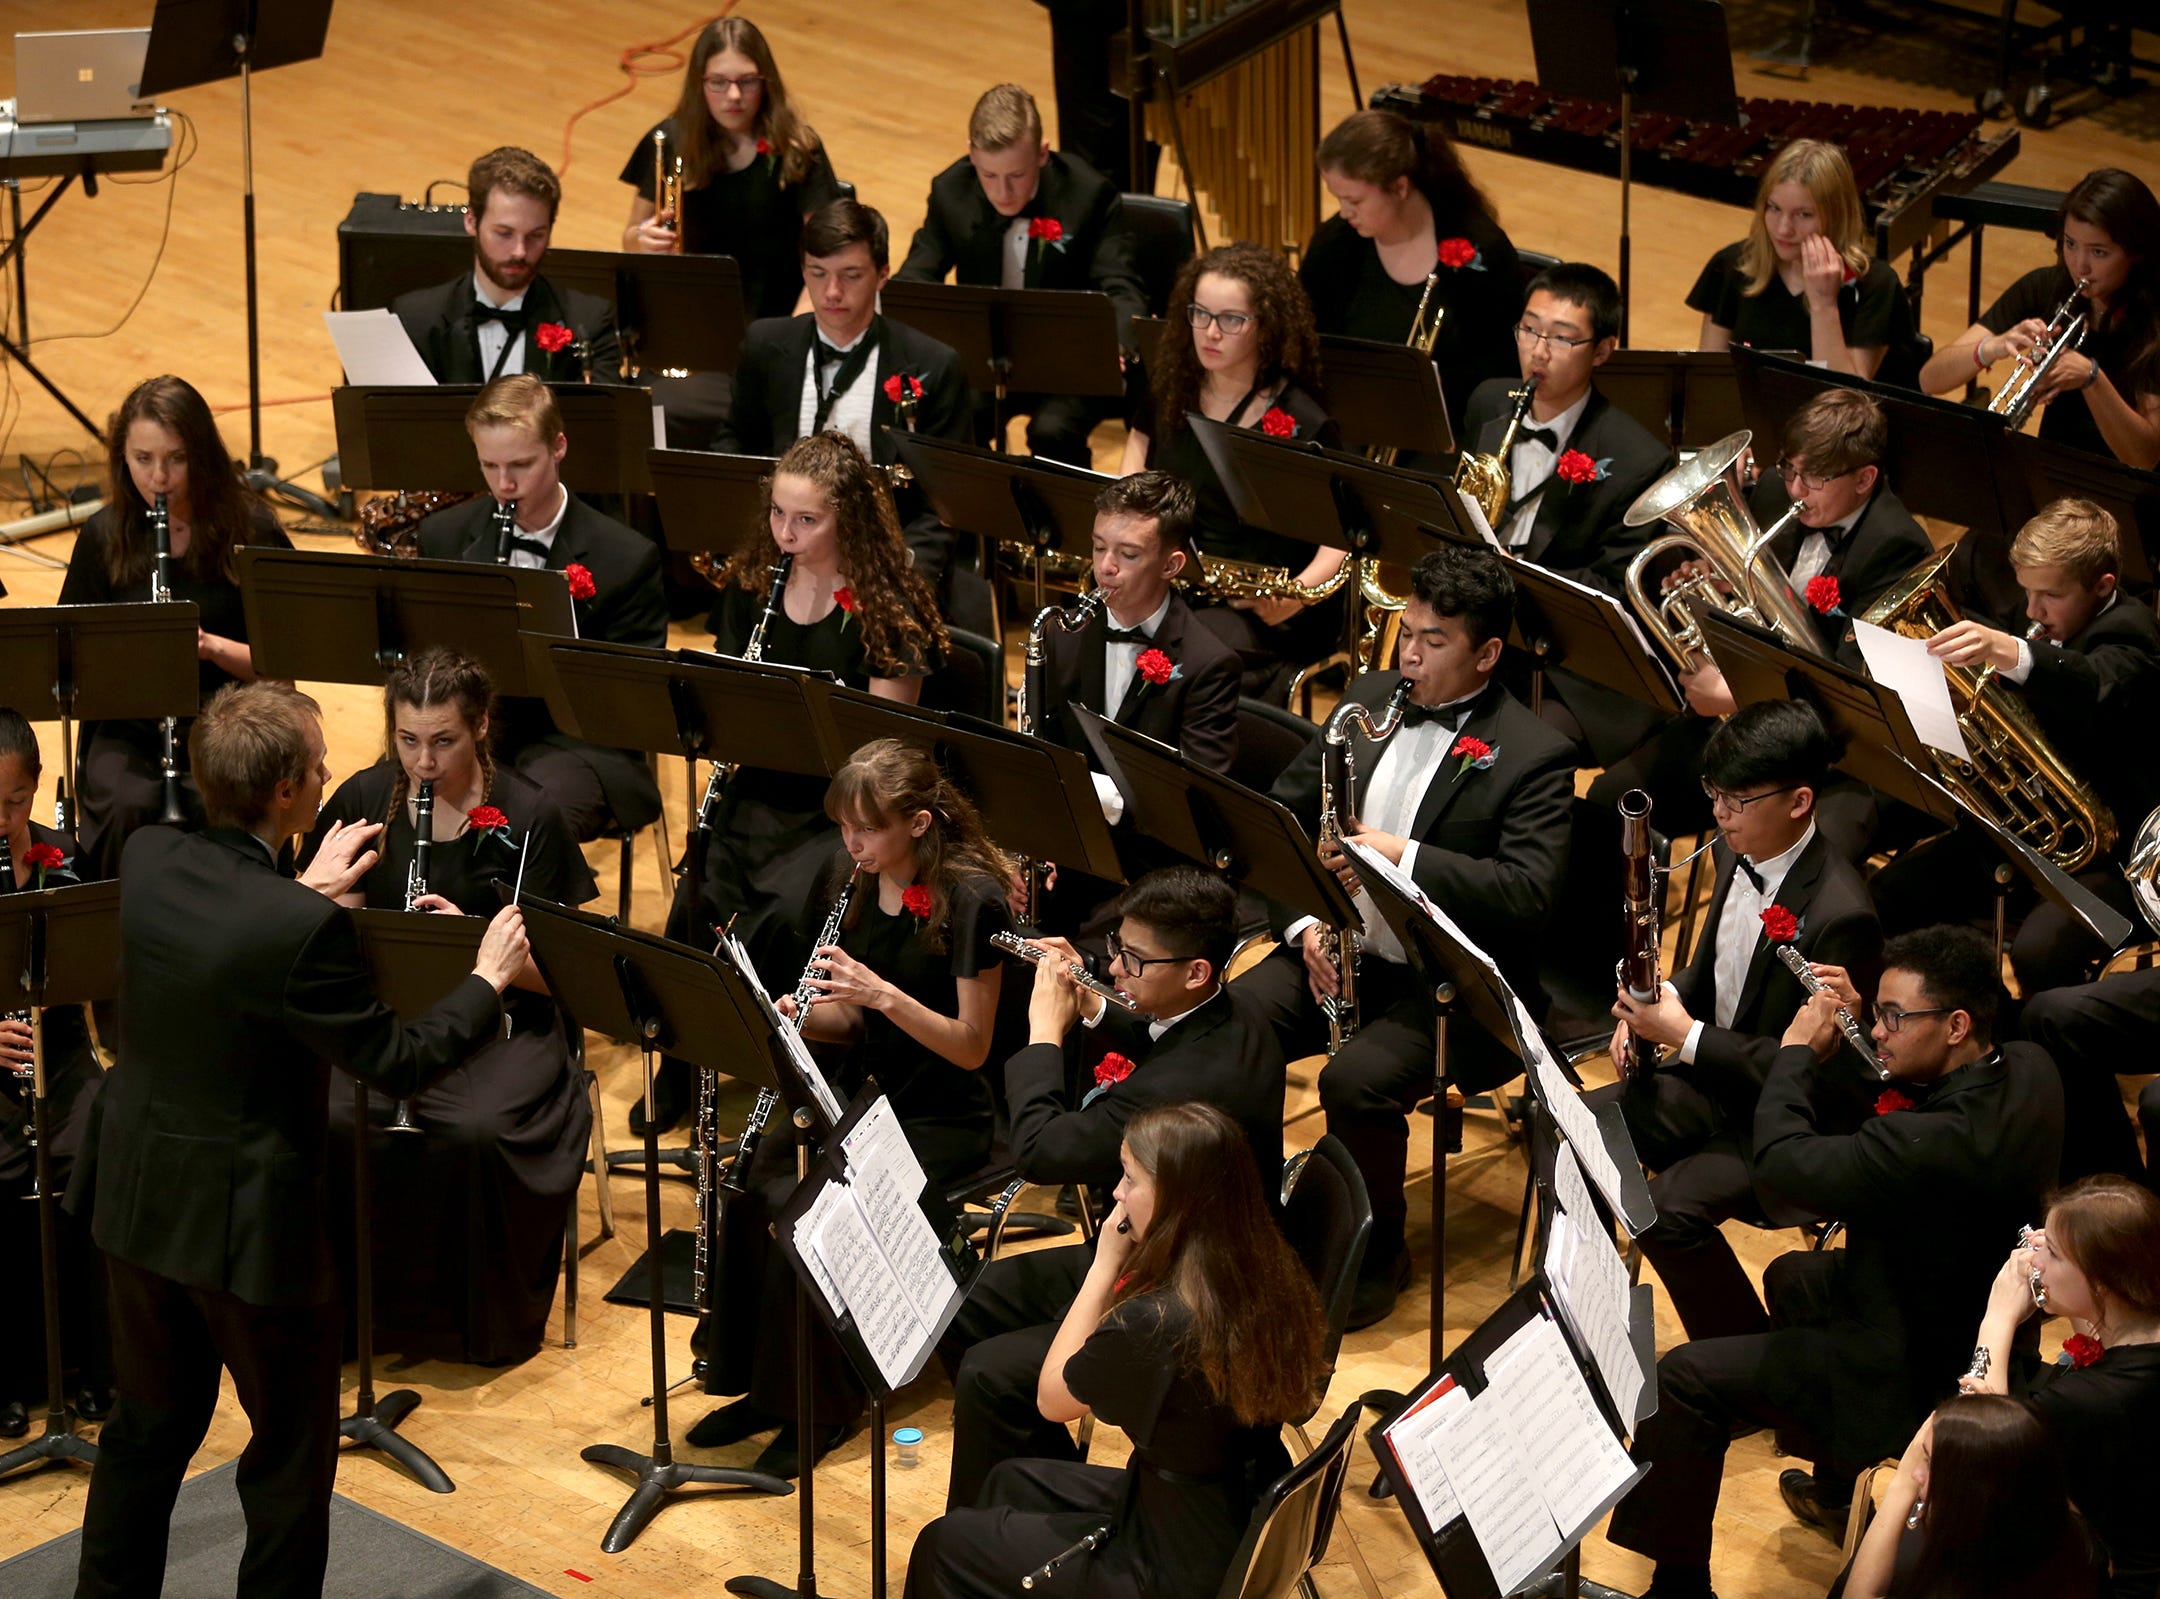 South Salem High School's band, under the direction of Ben Stokes, performs at the OSAA 6A Band State Championships at Oregon State University in Corvallis on May 11, 2019.